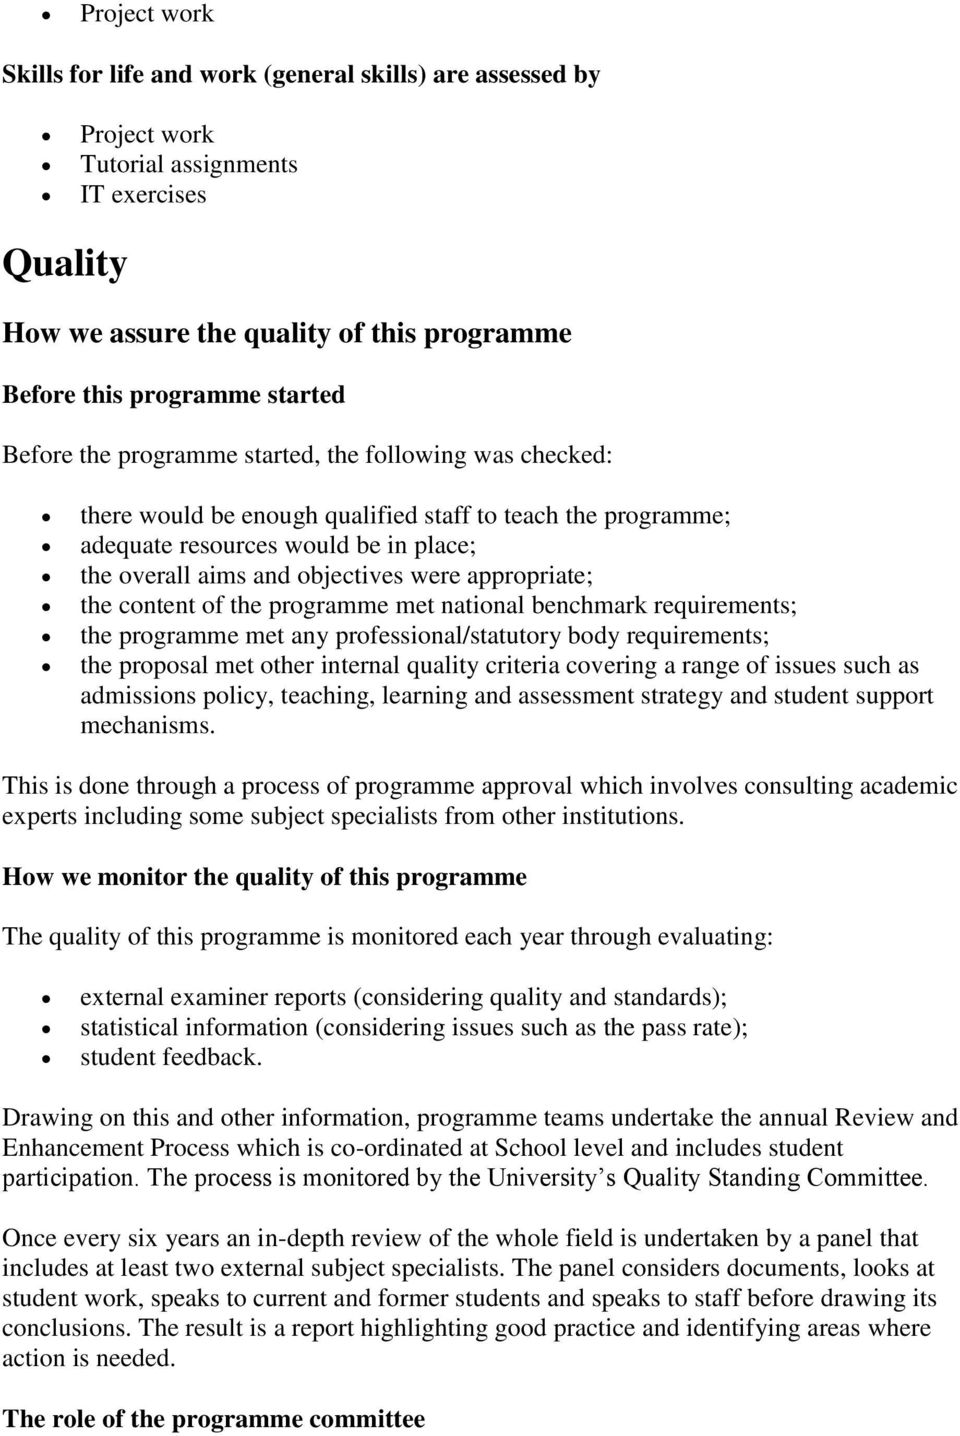 appropriate; the content of the programme met national benchmark requirements; the programme met any professional/statutory body requirements; the proposal met other internal quality criteria